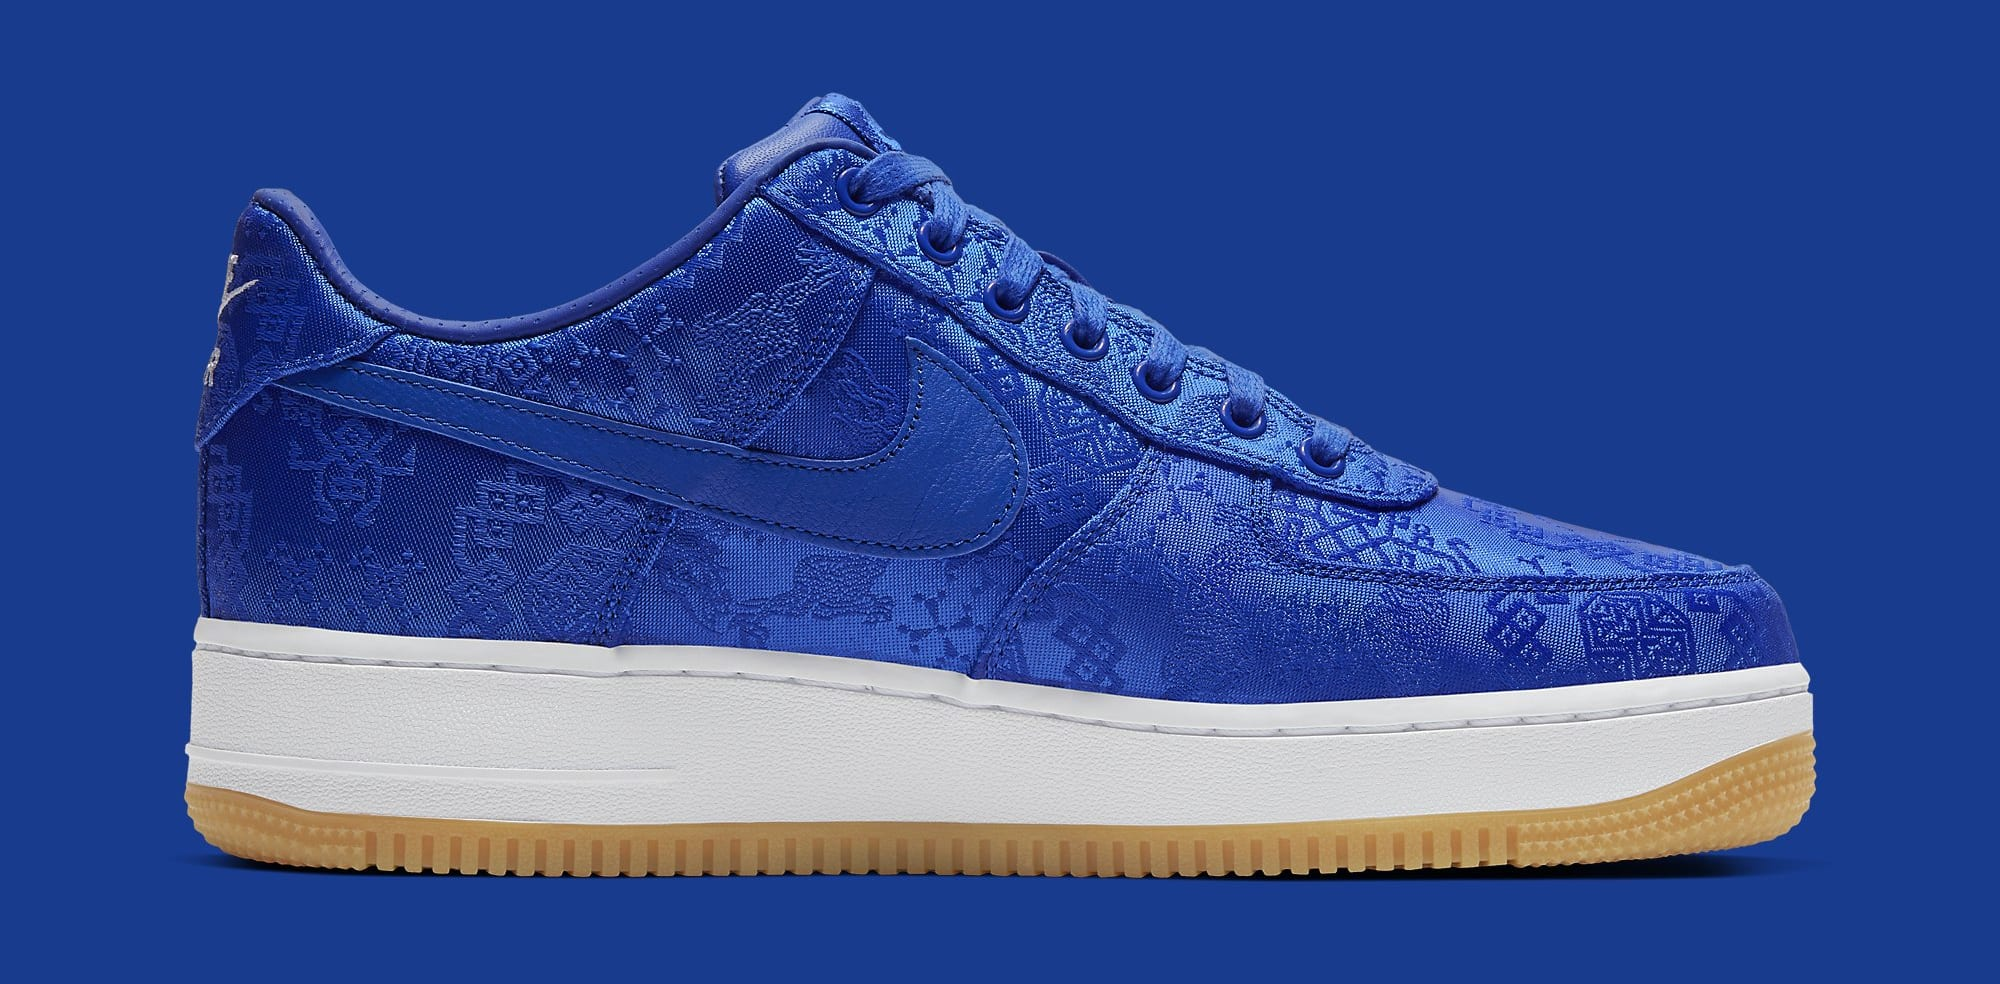 clot-nike-air-force-1-low-blue-cj5290-400-medial